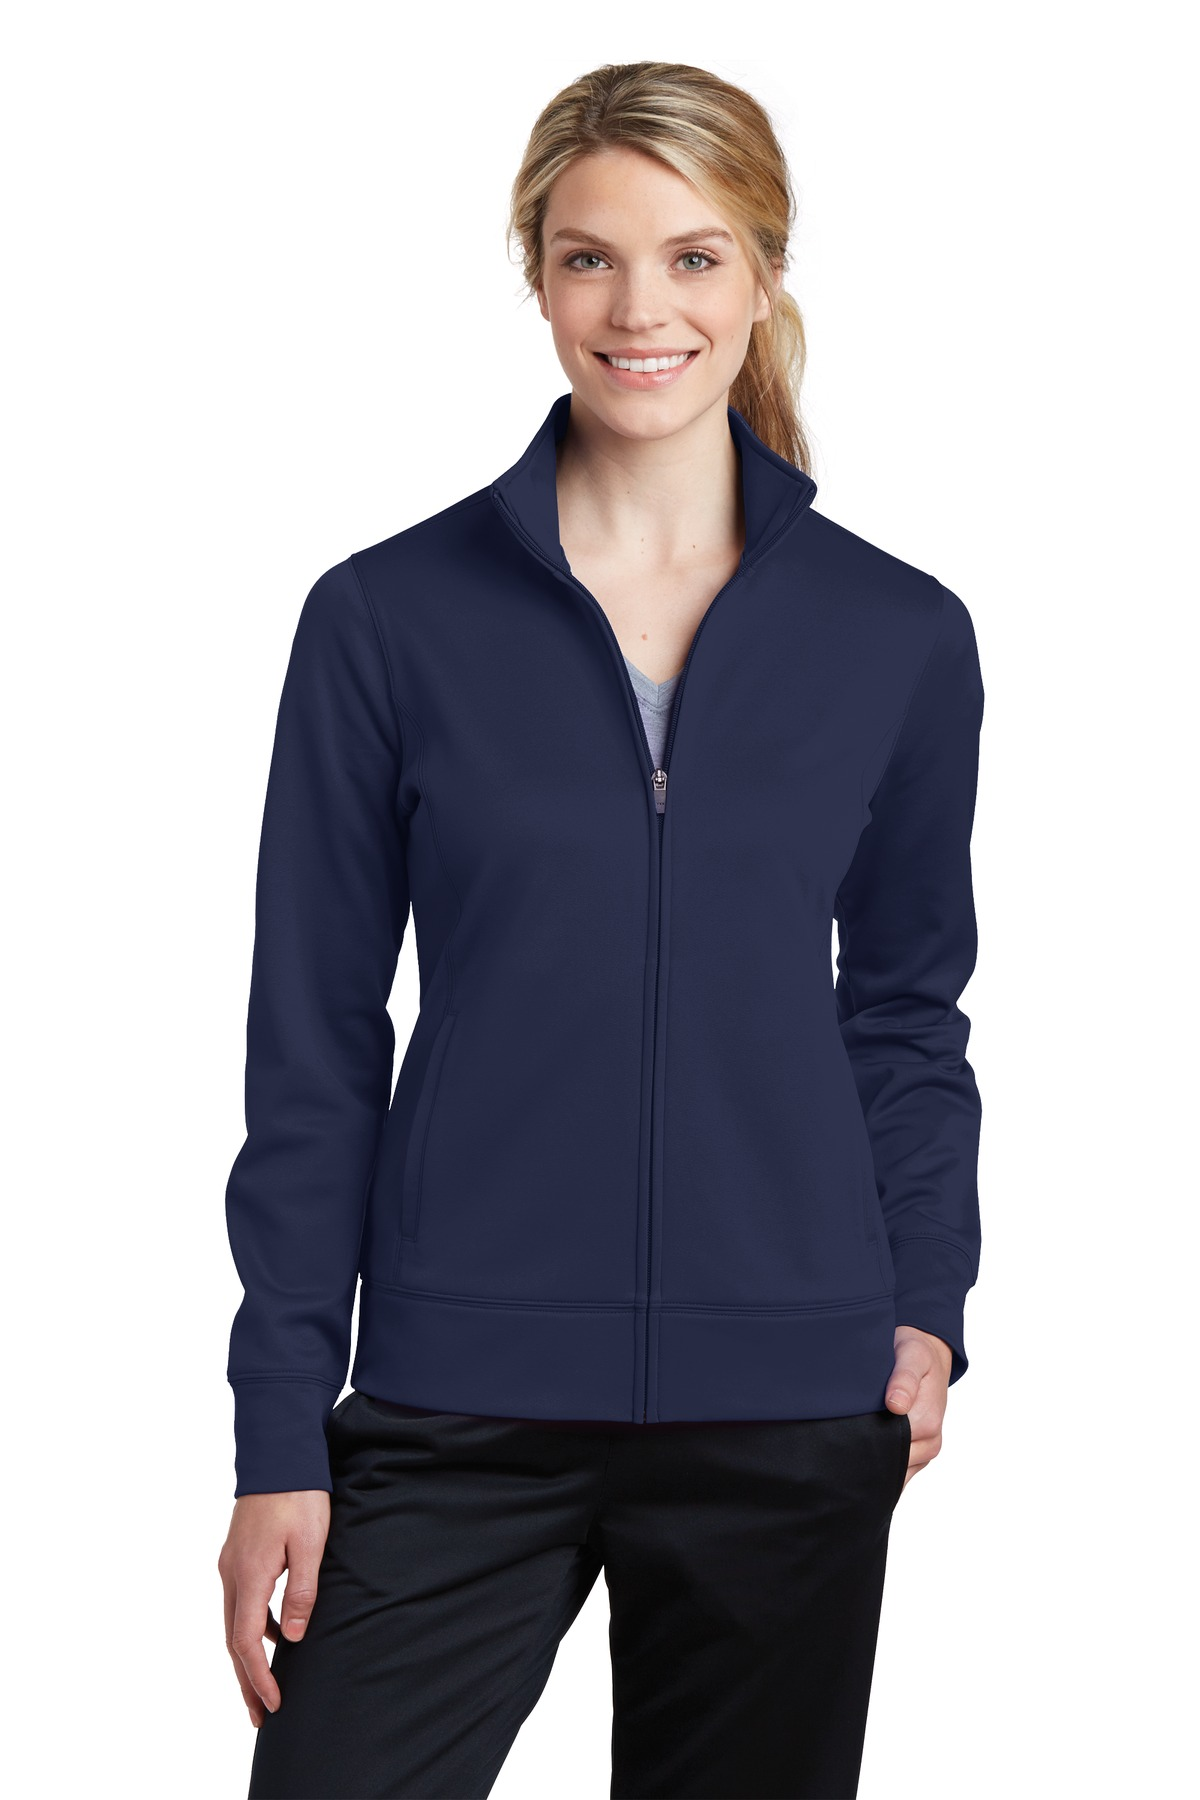 Sport-Tek ®  Ladies Sport-Wick ®  Fleece Full-Zip Jacket.  LST241 - Navy